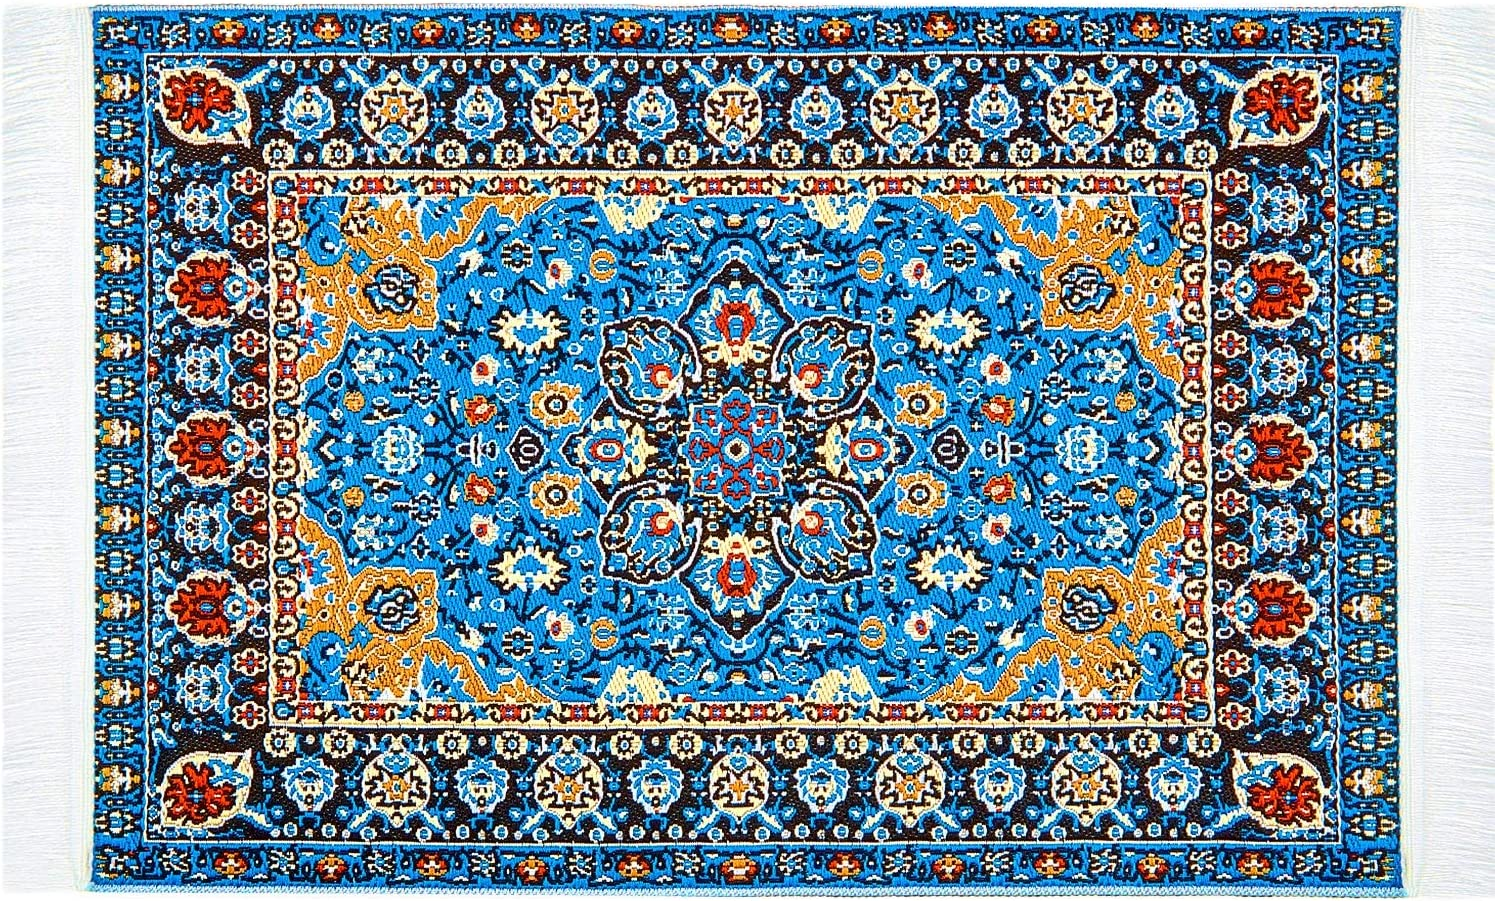 Skylety 1:12 Miniature Carpet Blue Floral Print Vintage Woven Rug Miniature Turkey Rug Bedroom Floor Furniture Accessory Blanket for Miniature Dollhouse Decoration